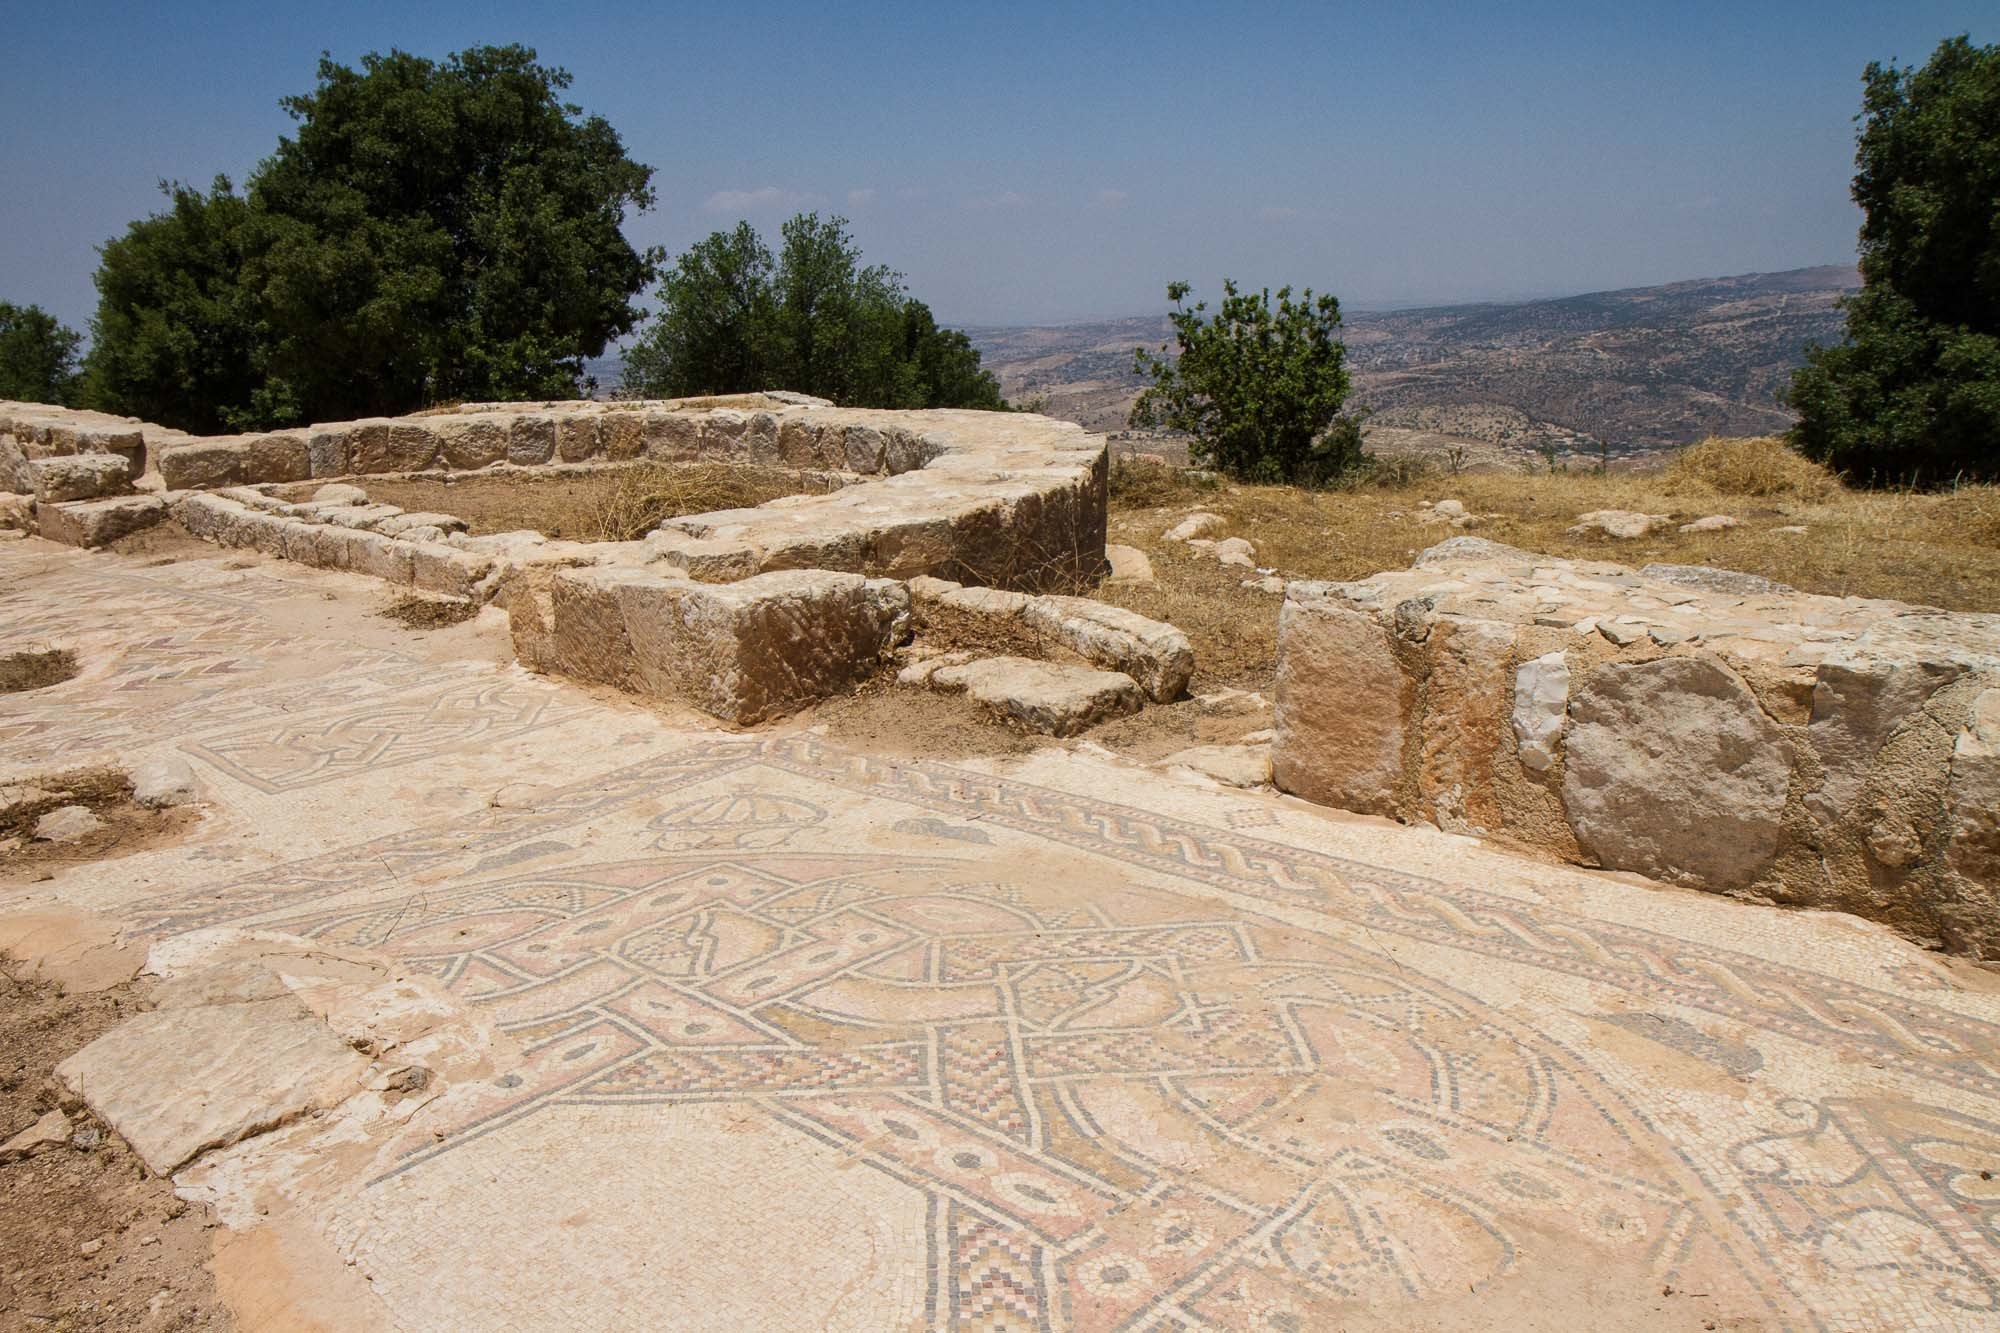 mar elias mosaics and view. Montaña de San Elías